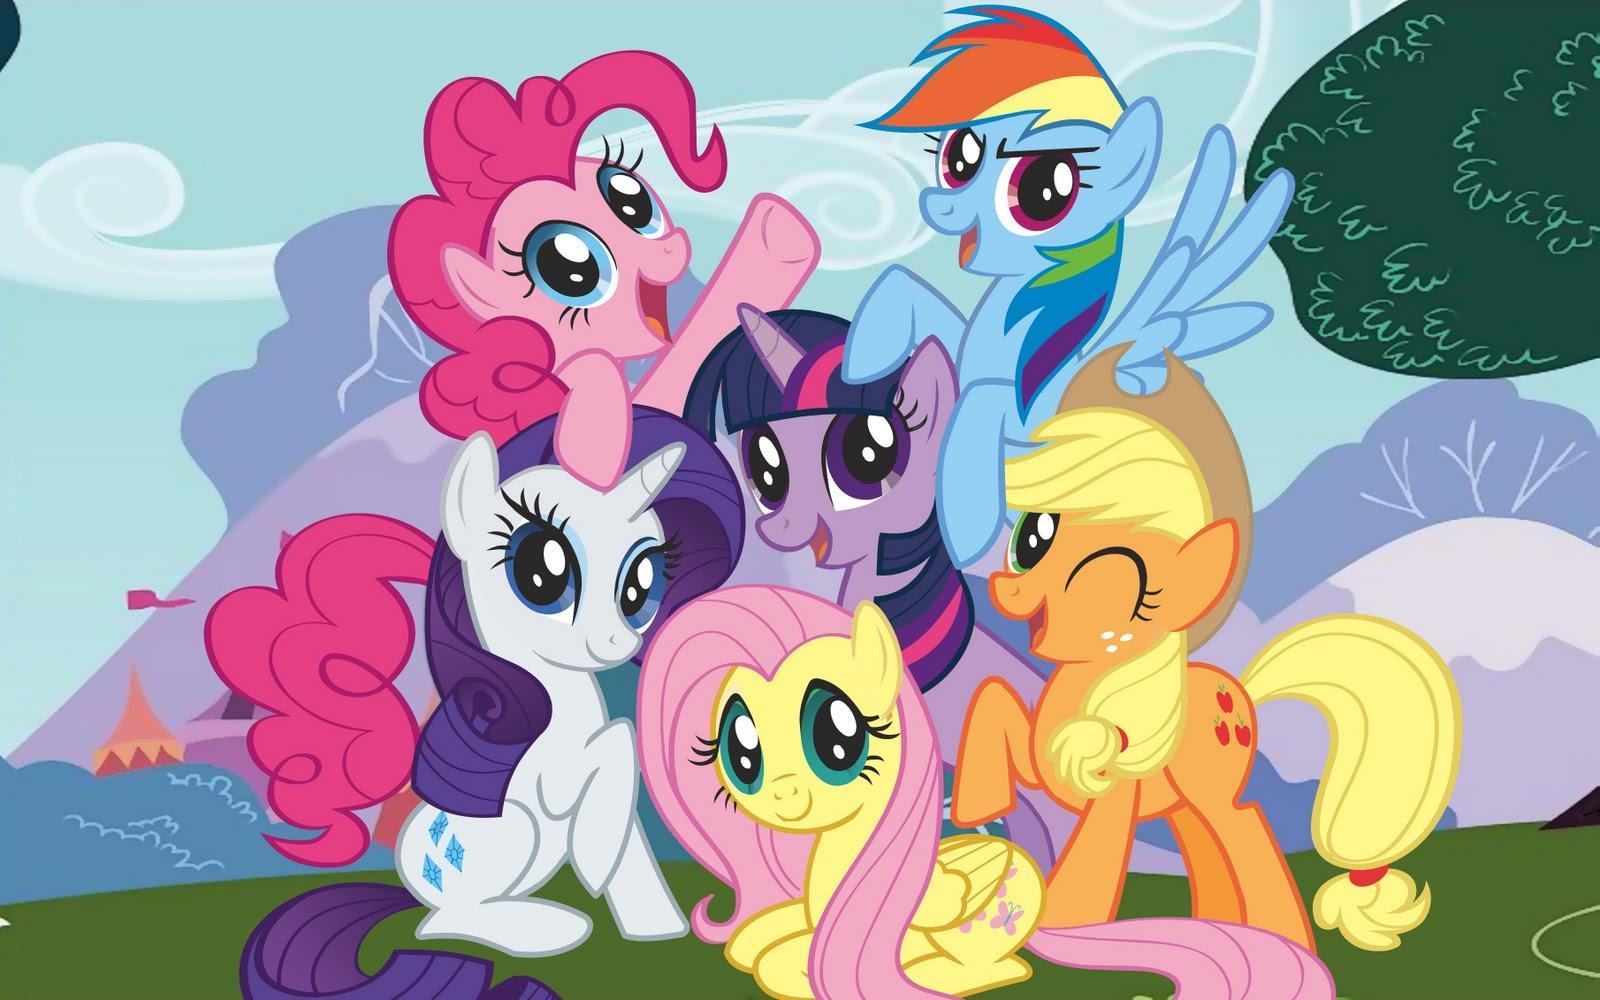 How well do you know My Little Pony: Friendship is Magic?